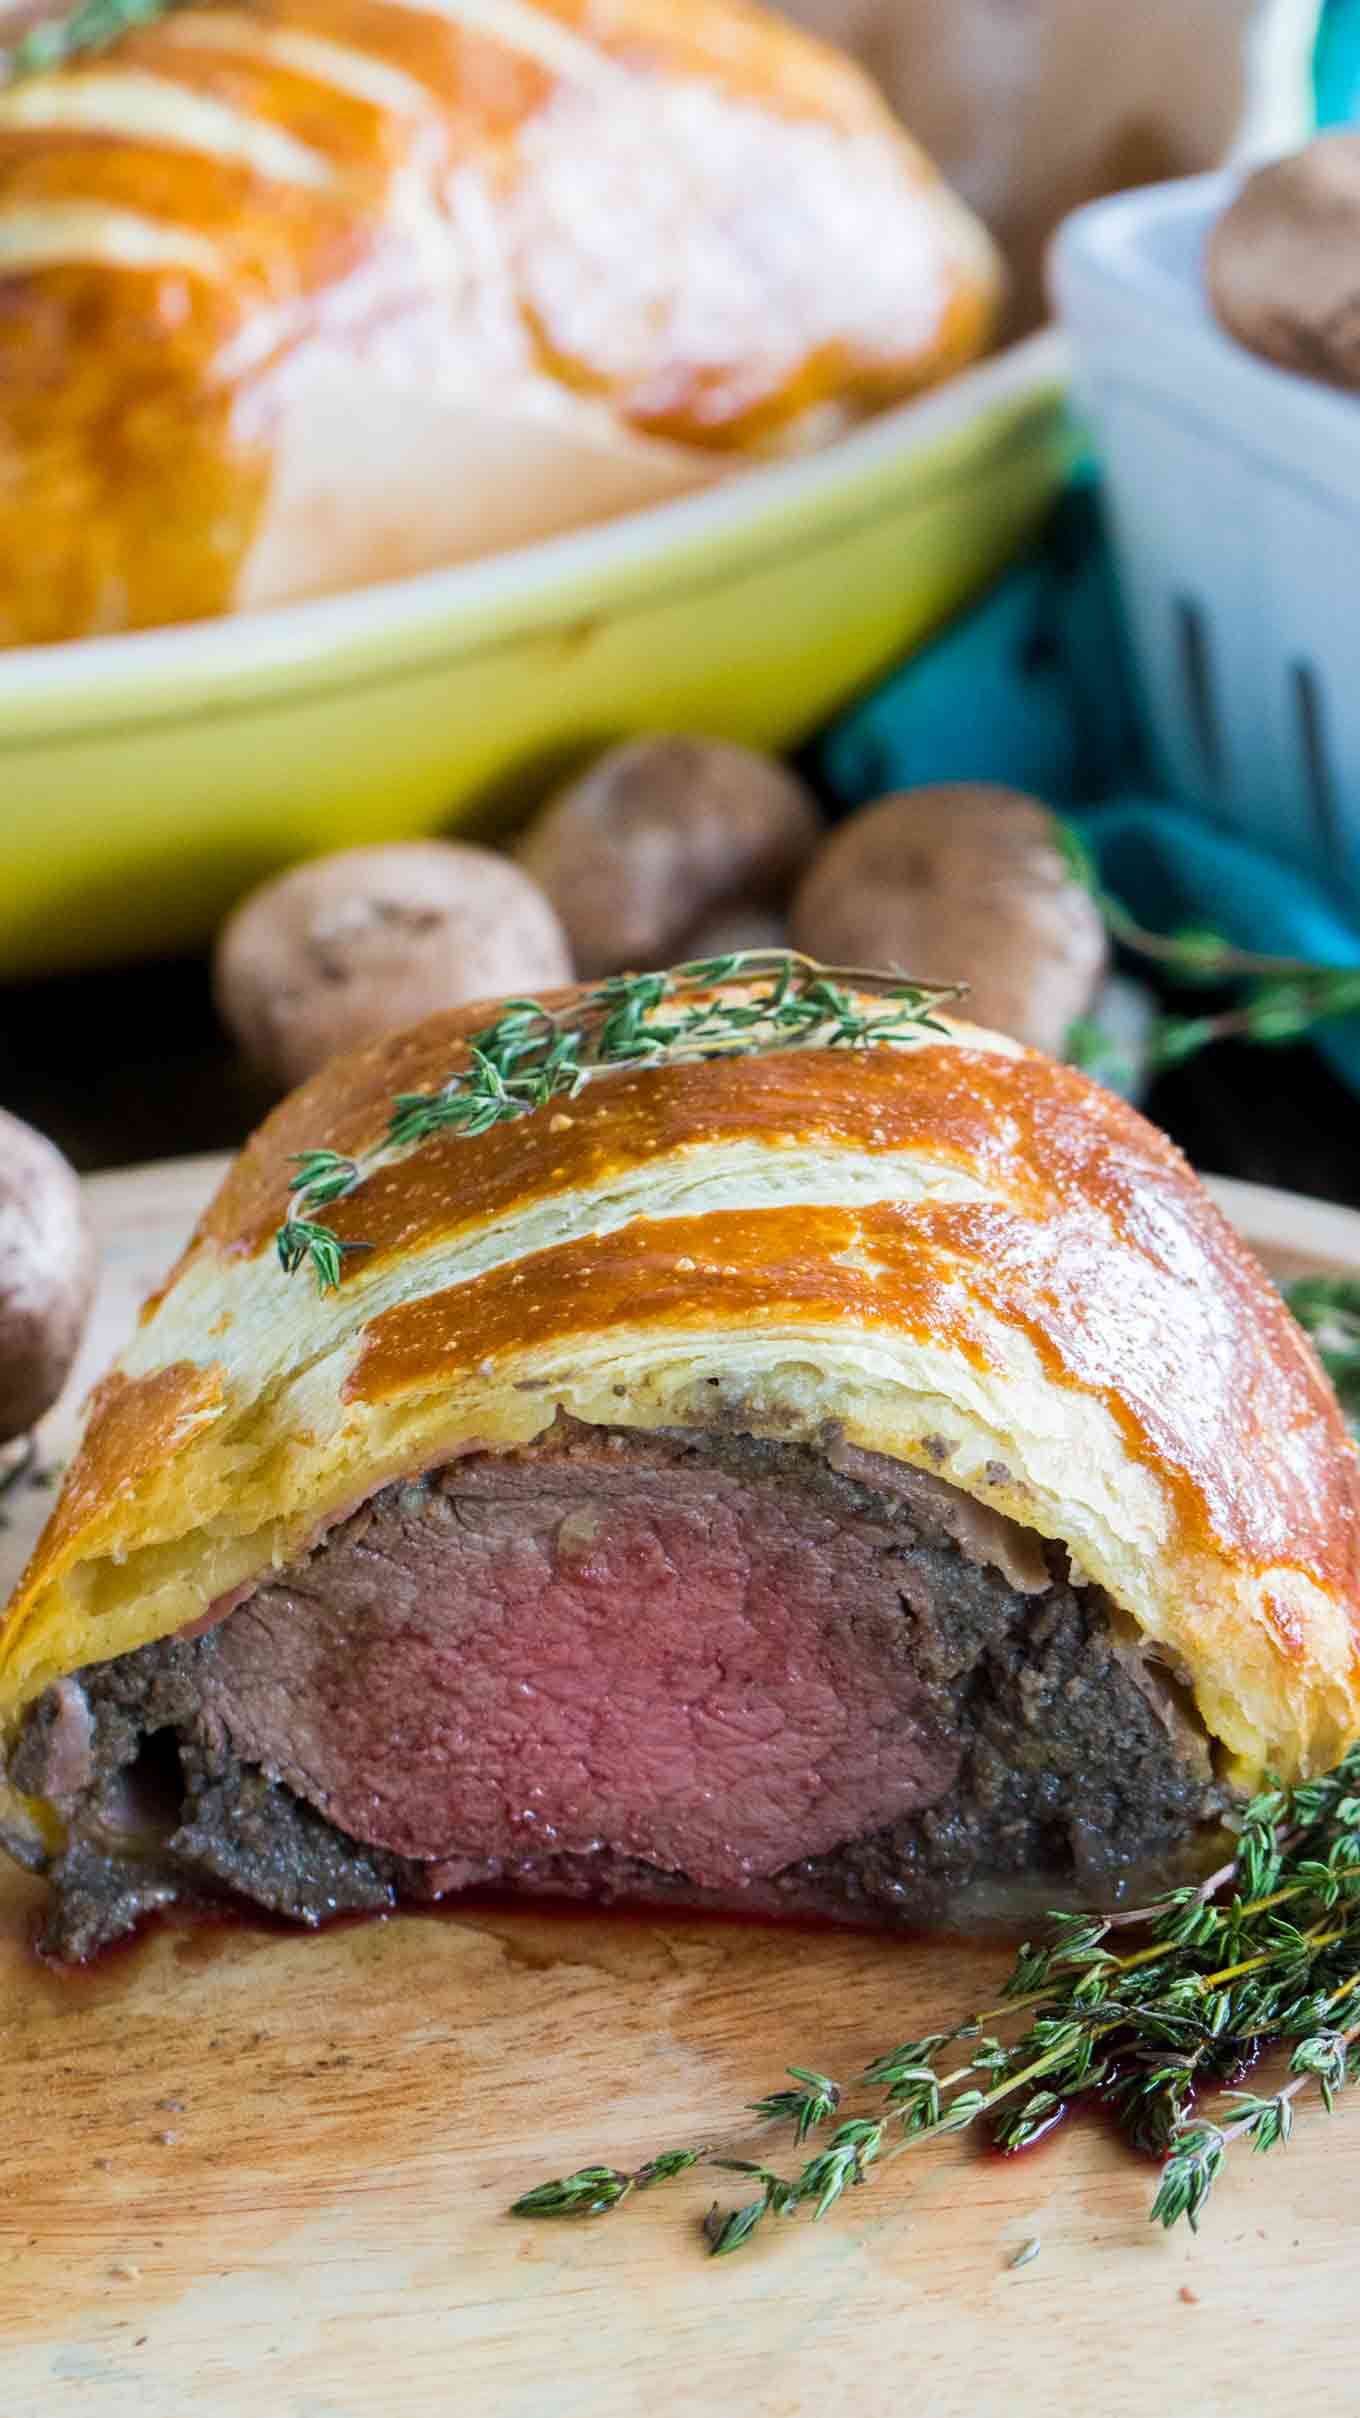 Beef Wellington cooked perfectly while wrapped in puff pastry, ham and the most amazing mushroom duxelles made with cognac duck liver mousse pate.